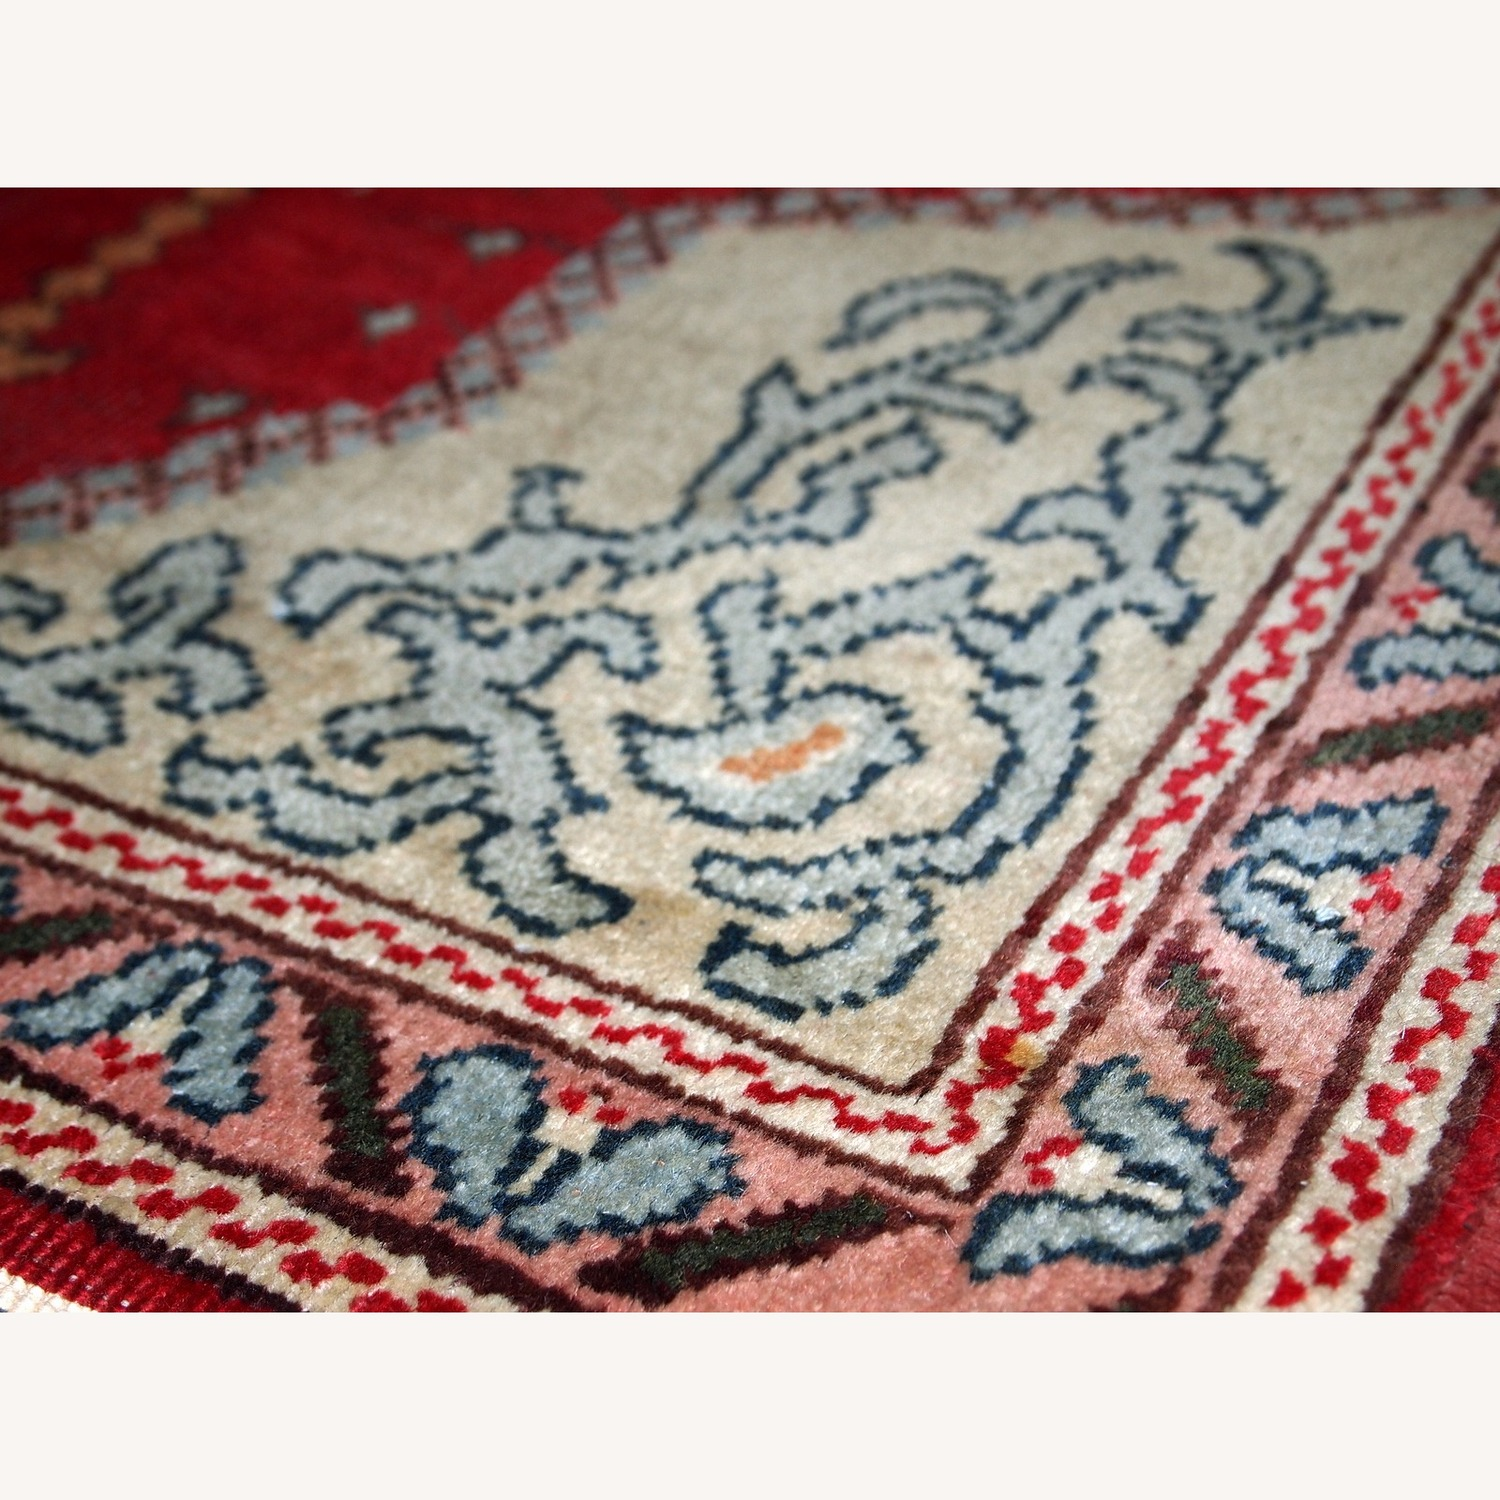 Handmade Antique Turkish Konya Rug - image-6